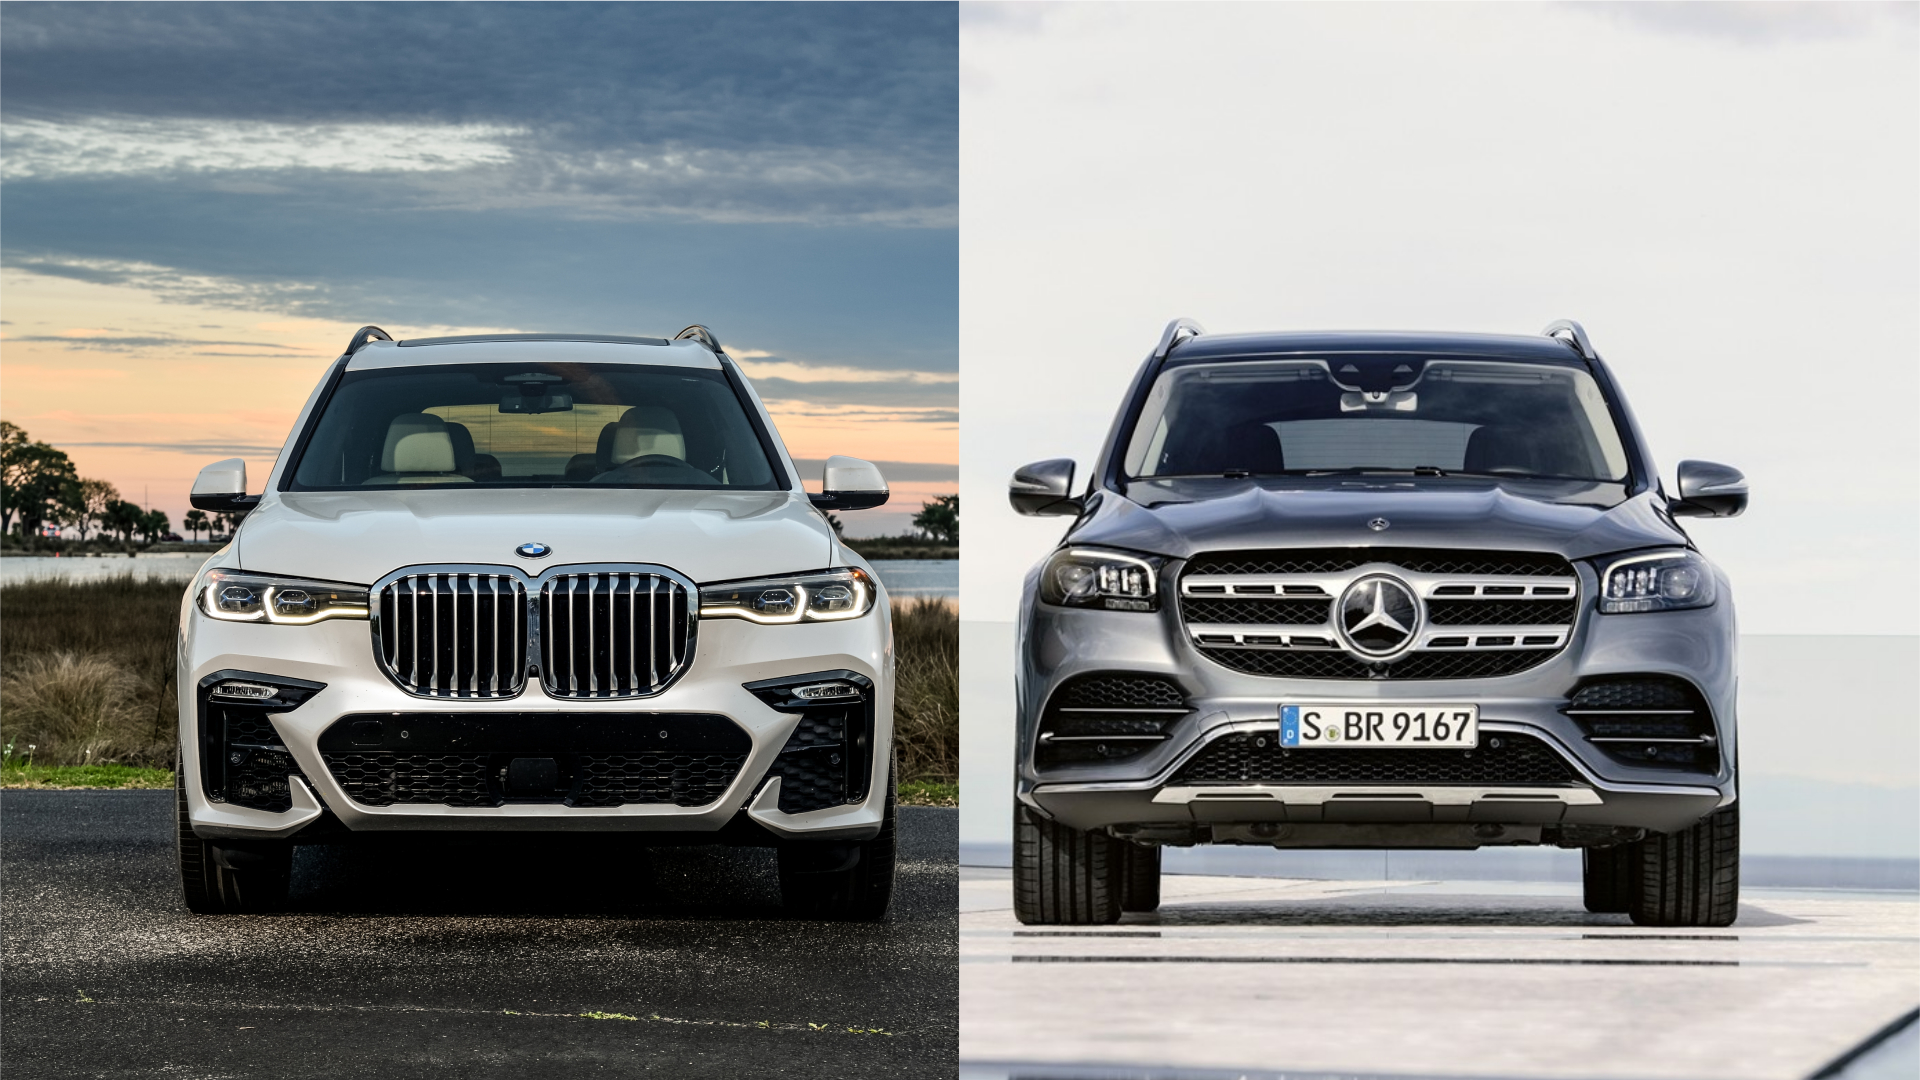 2020 Mercedes Benz Gls Class Vs Bmw X7 Big Luxury Suv Photo Comparison Autoevolution